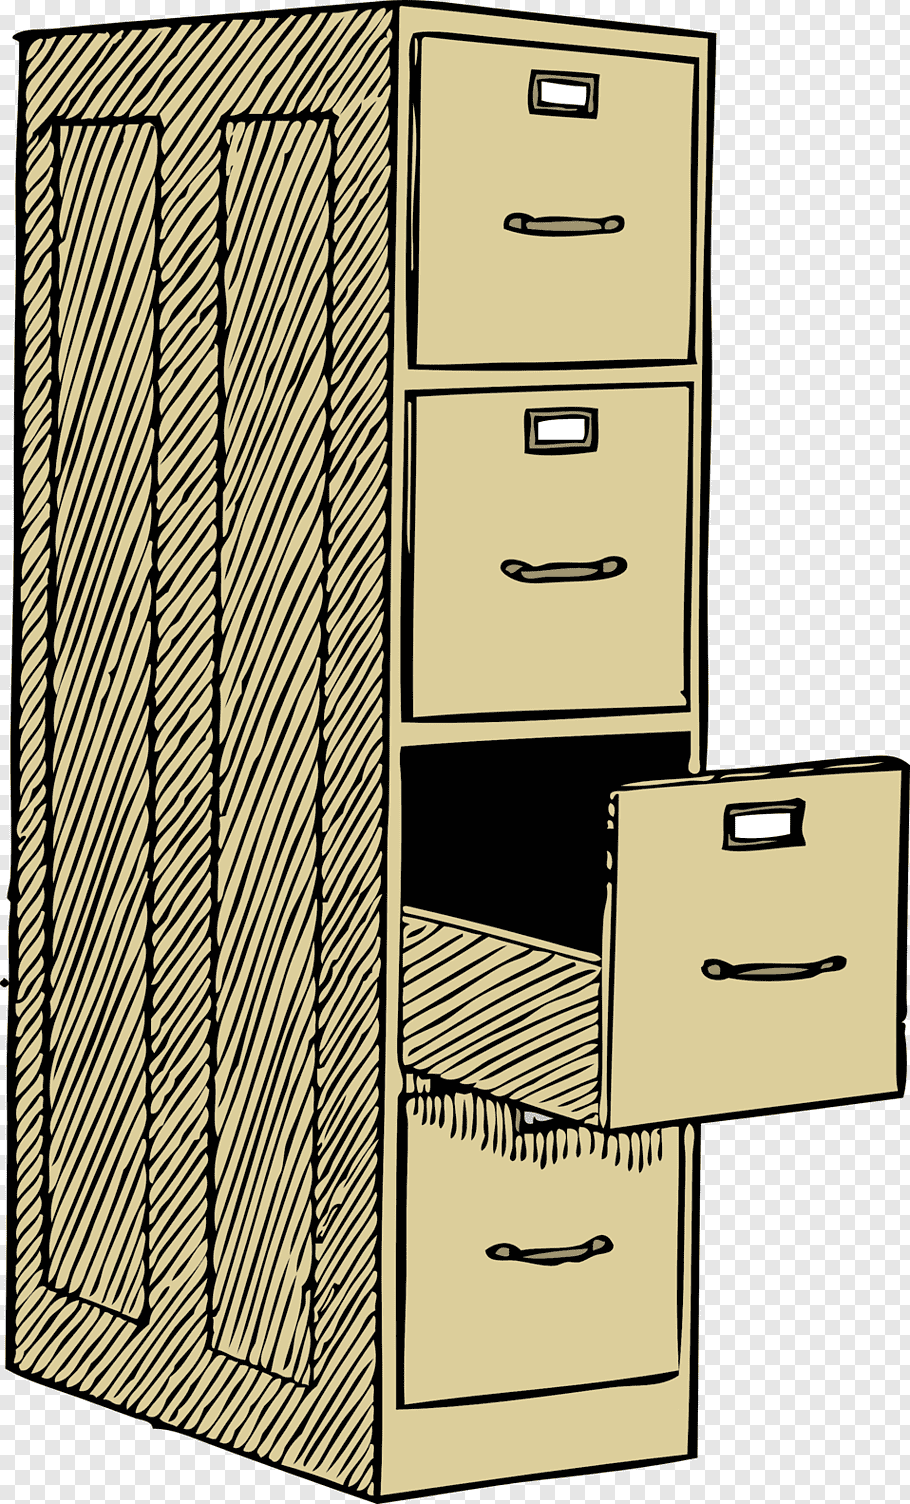 File Cabinets Cabinetry File Folders, Cupboard free png.